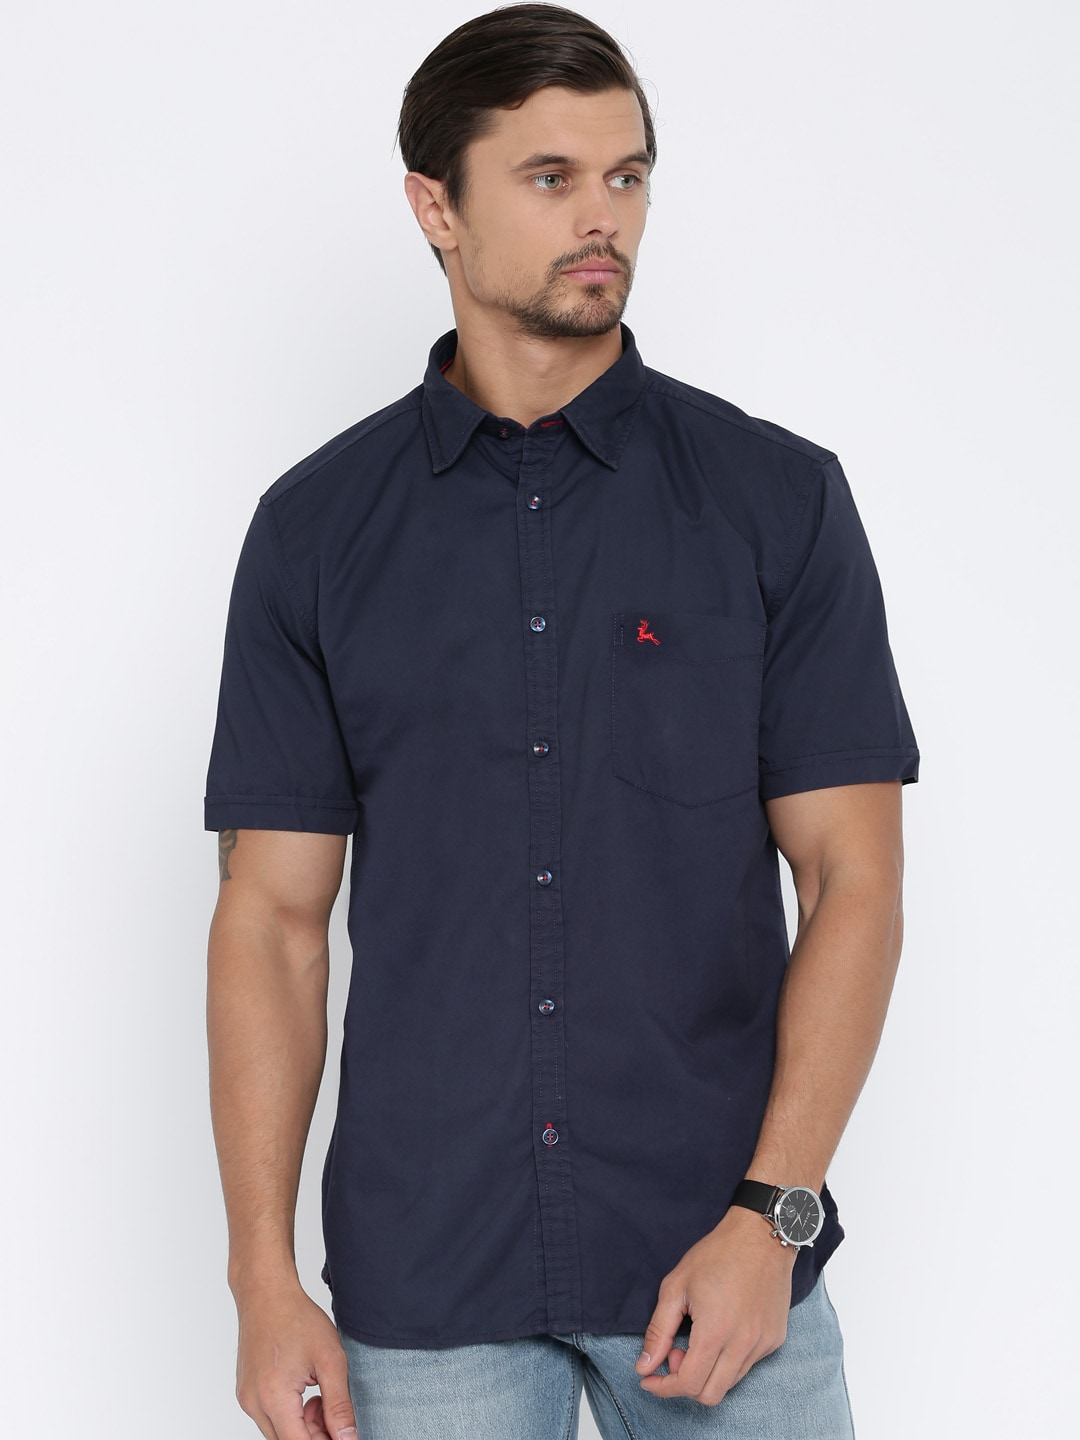 Parx Navy Slim Fit Solid Casual Shirt image